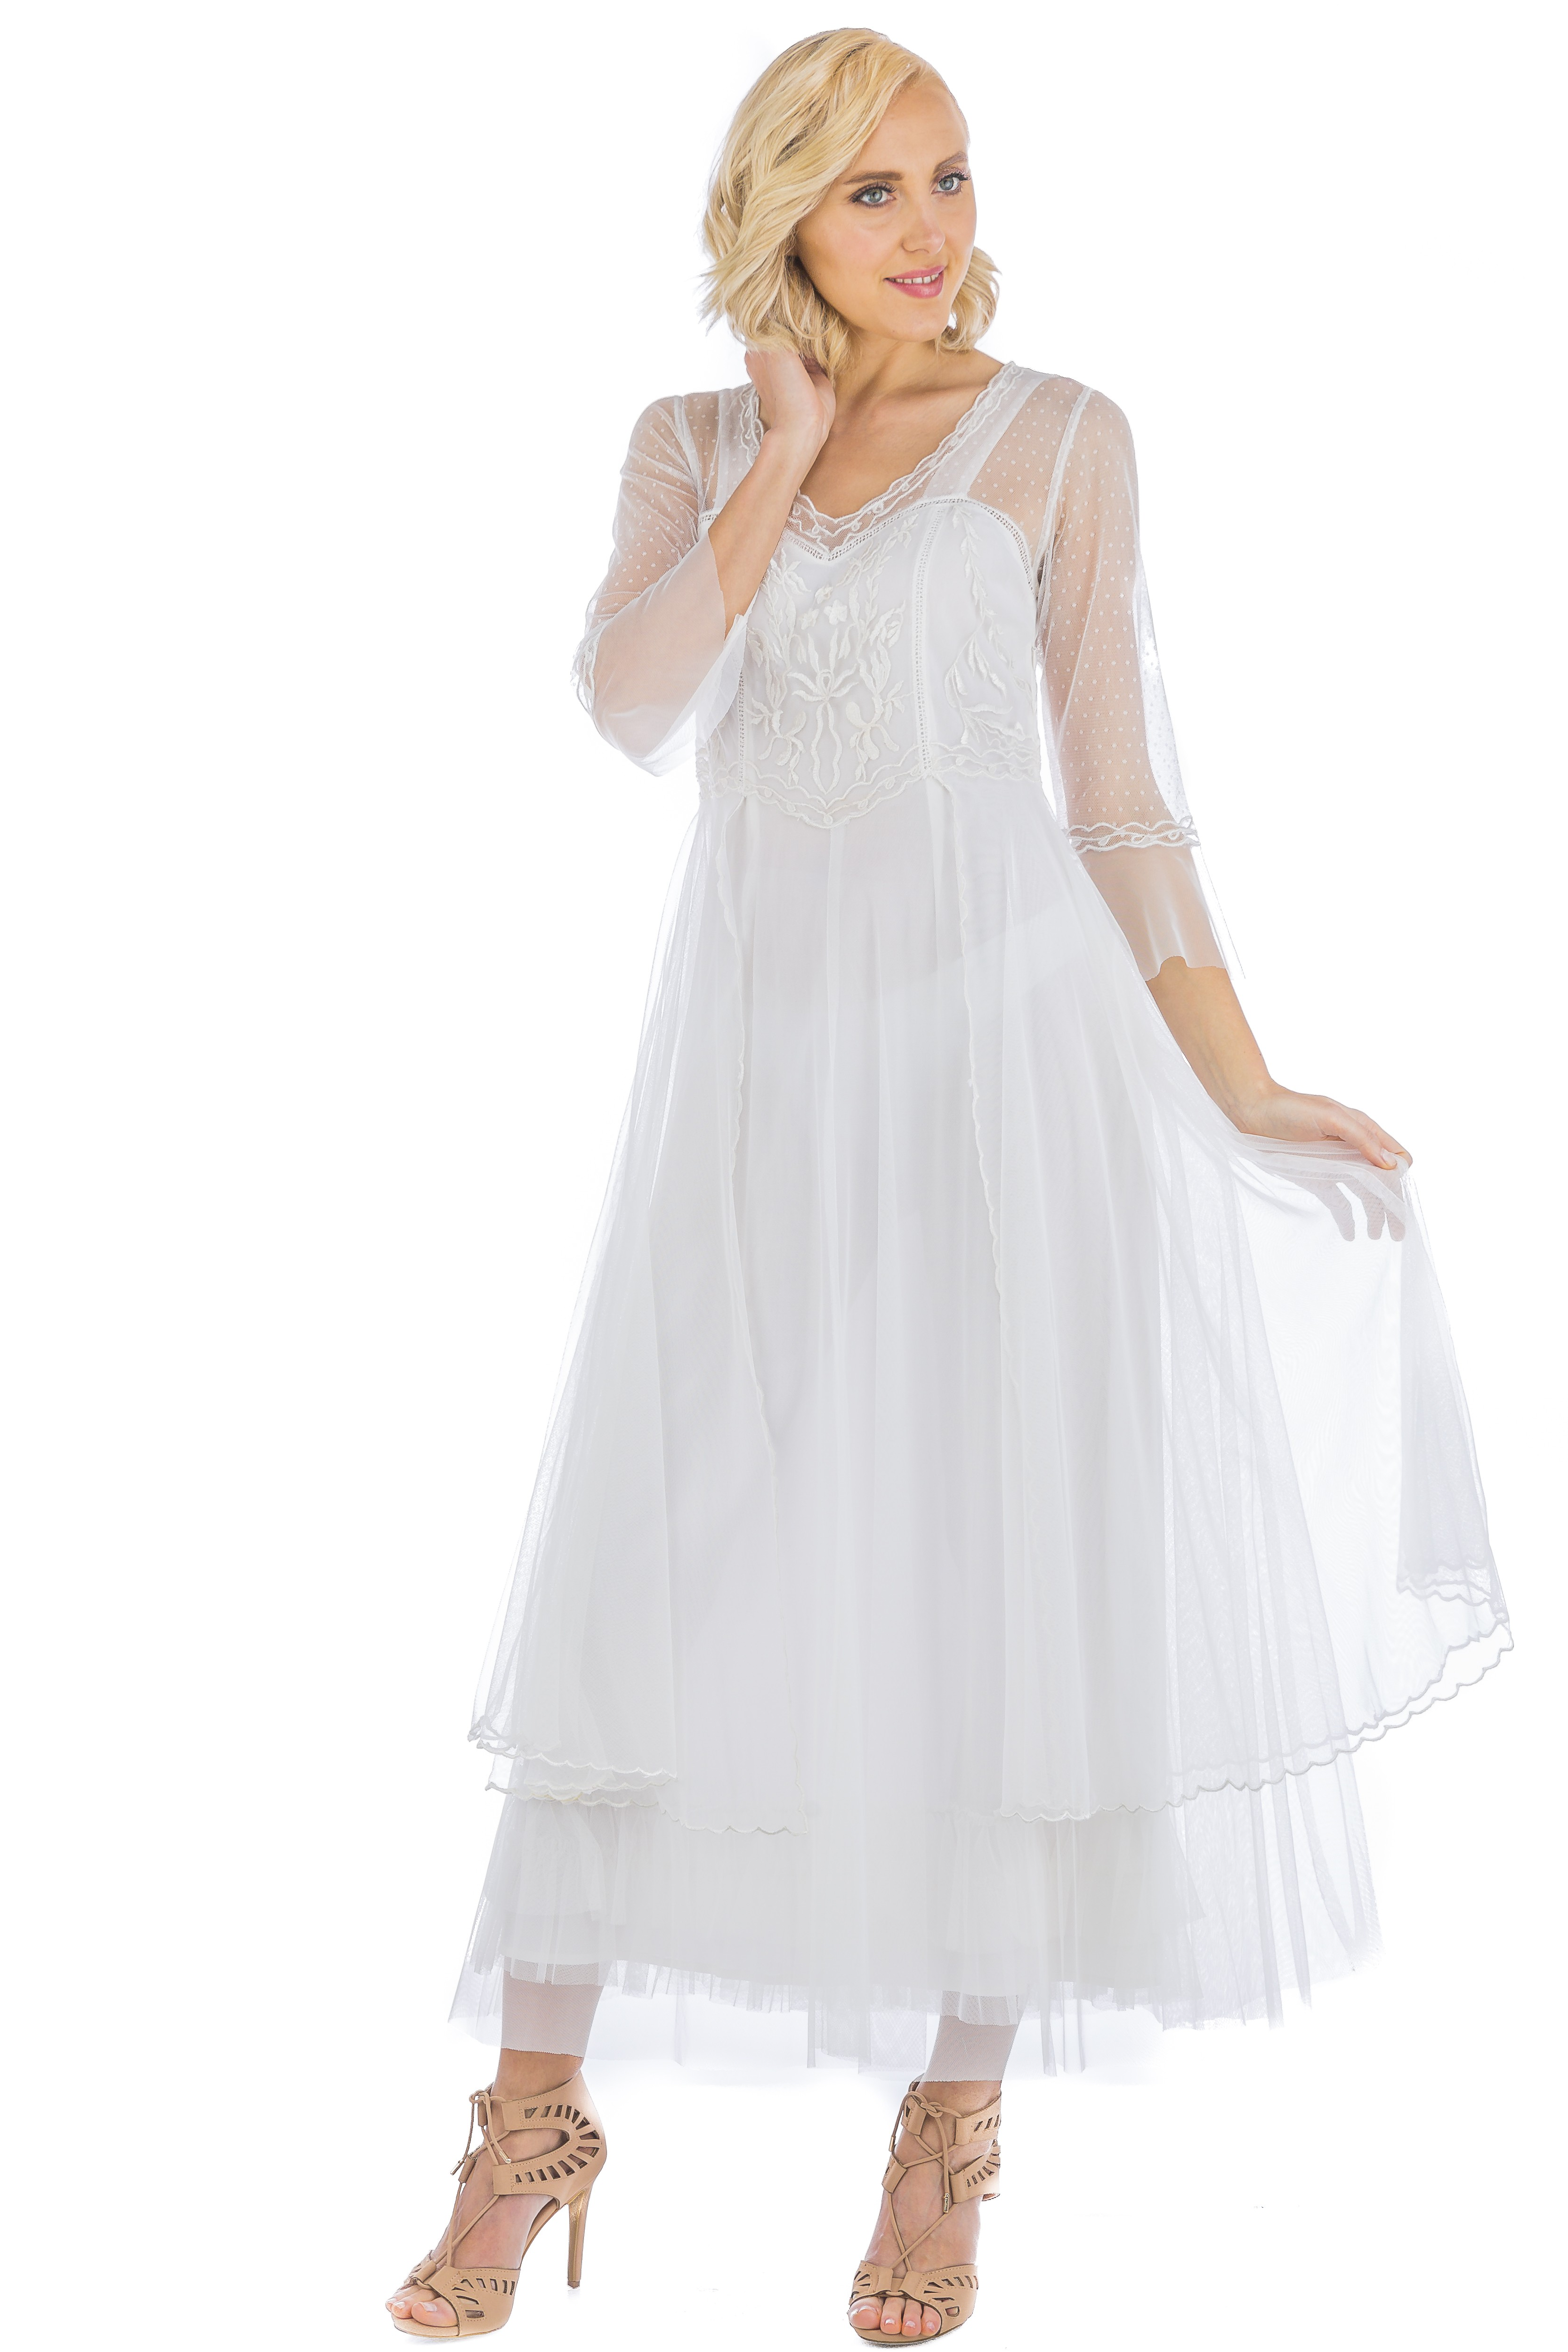 Vivian CL-075 Vintage Style Wedding Gown in Ivory by Nataya